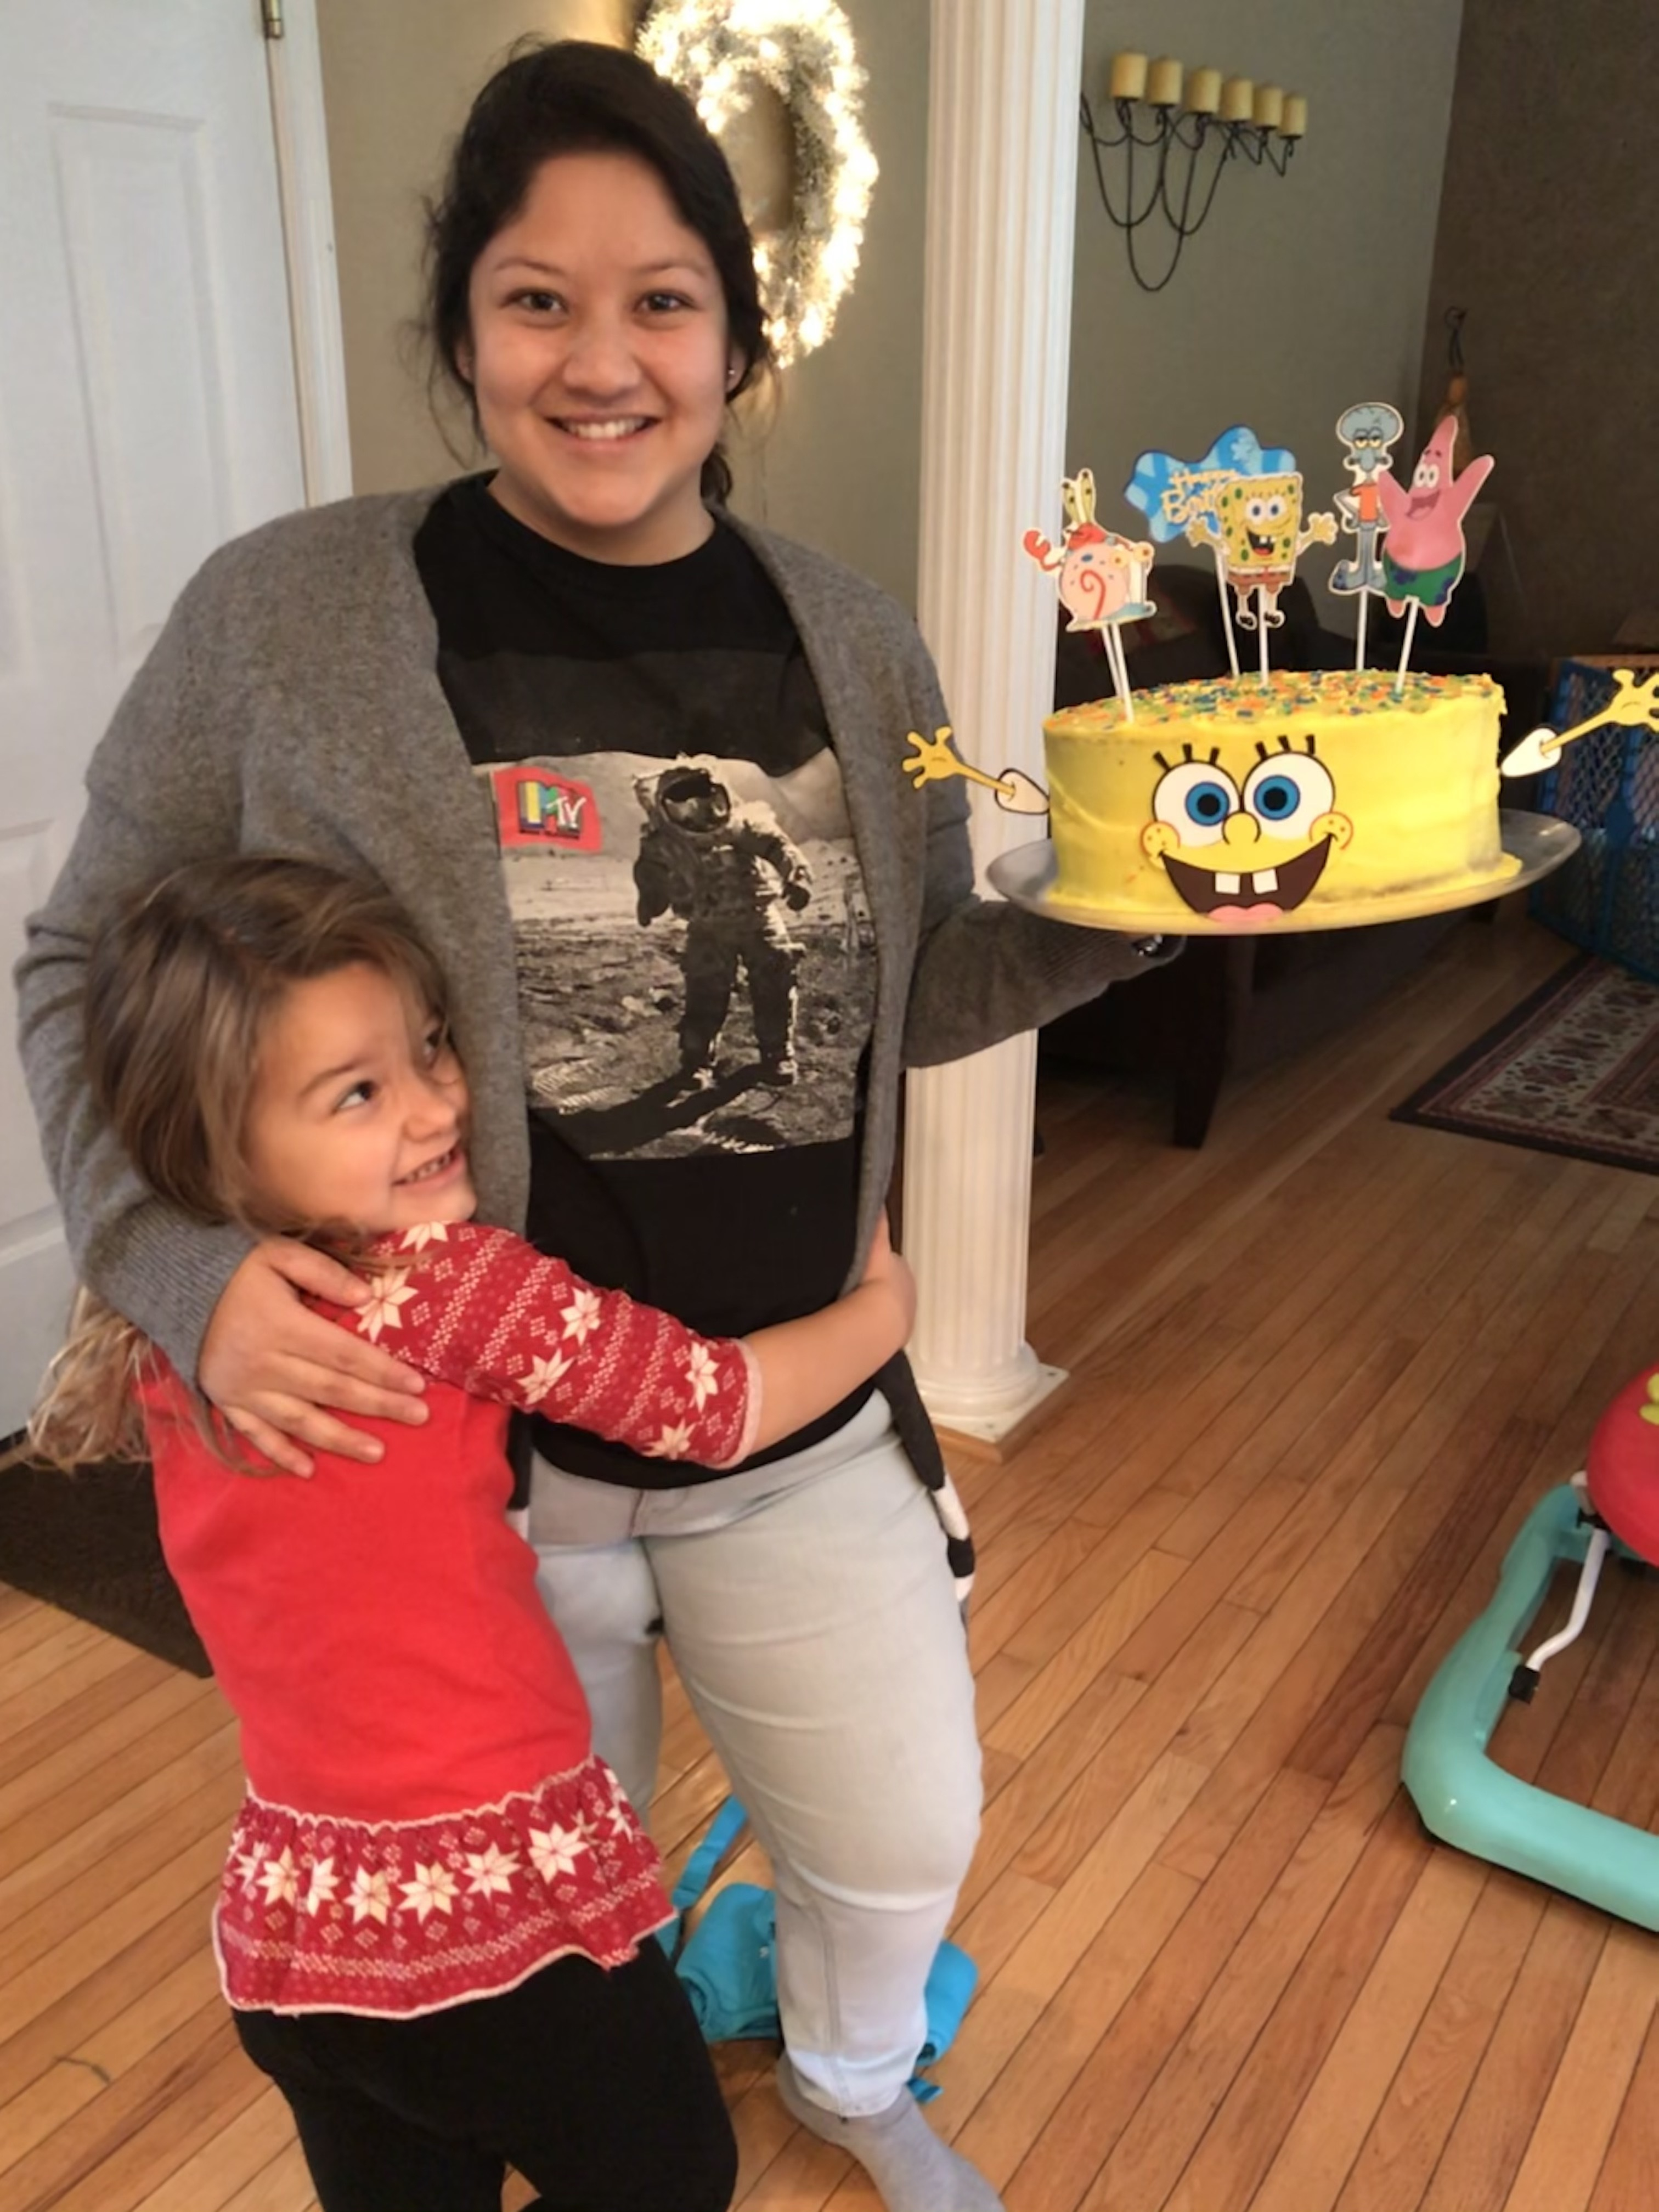 au pair pamela from ecuador celebrating host child's birthday